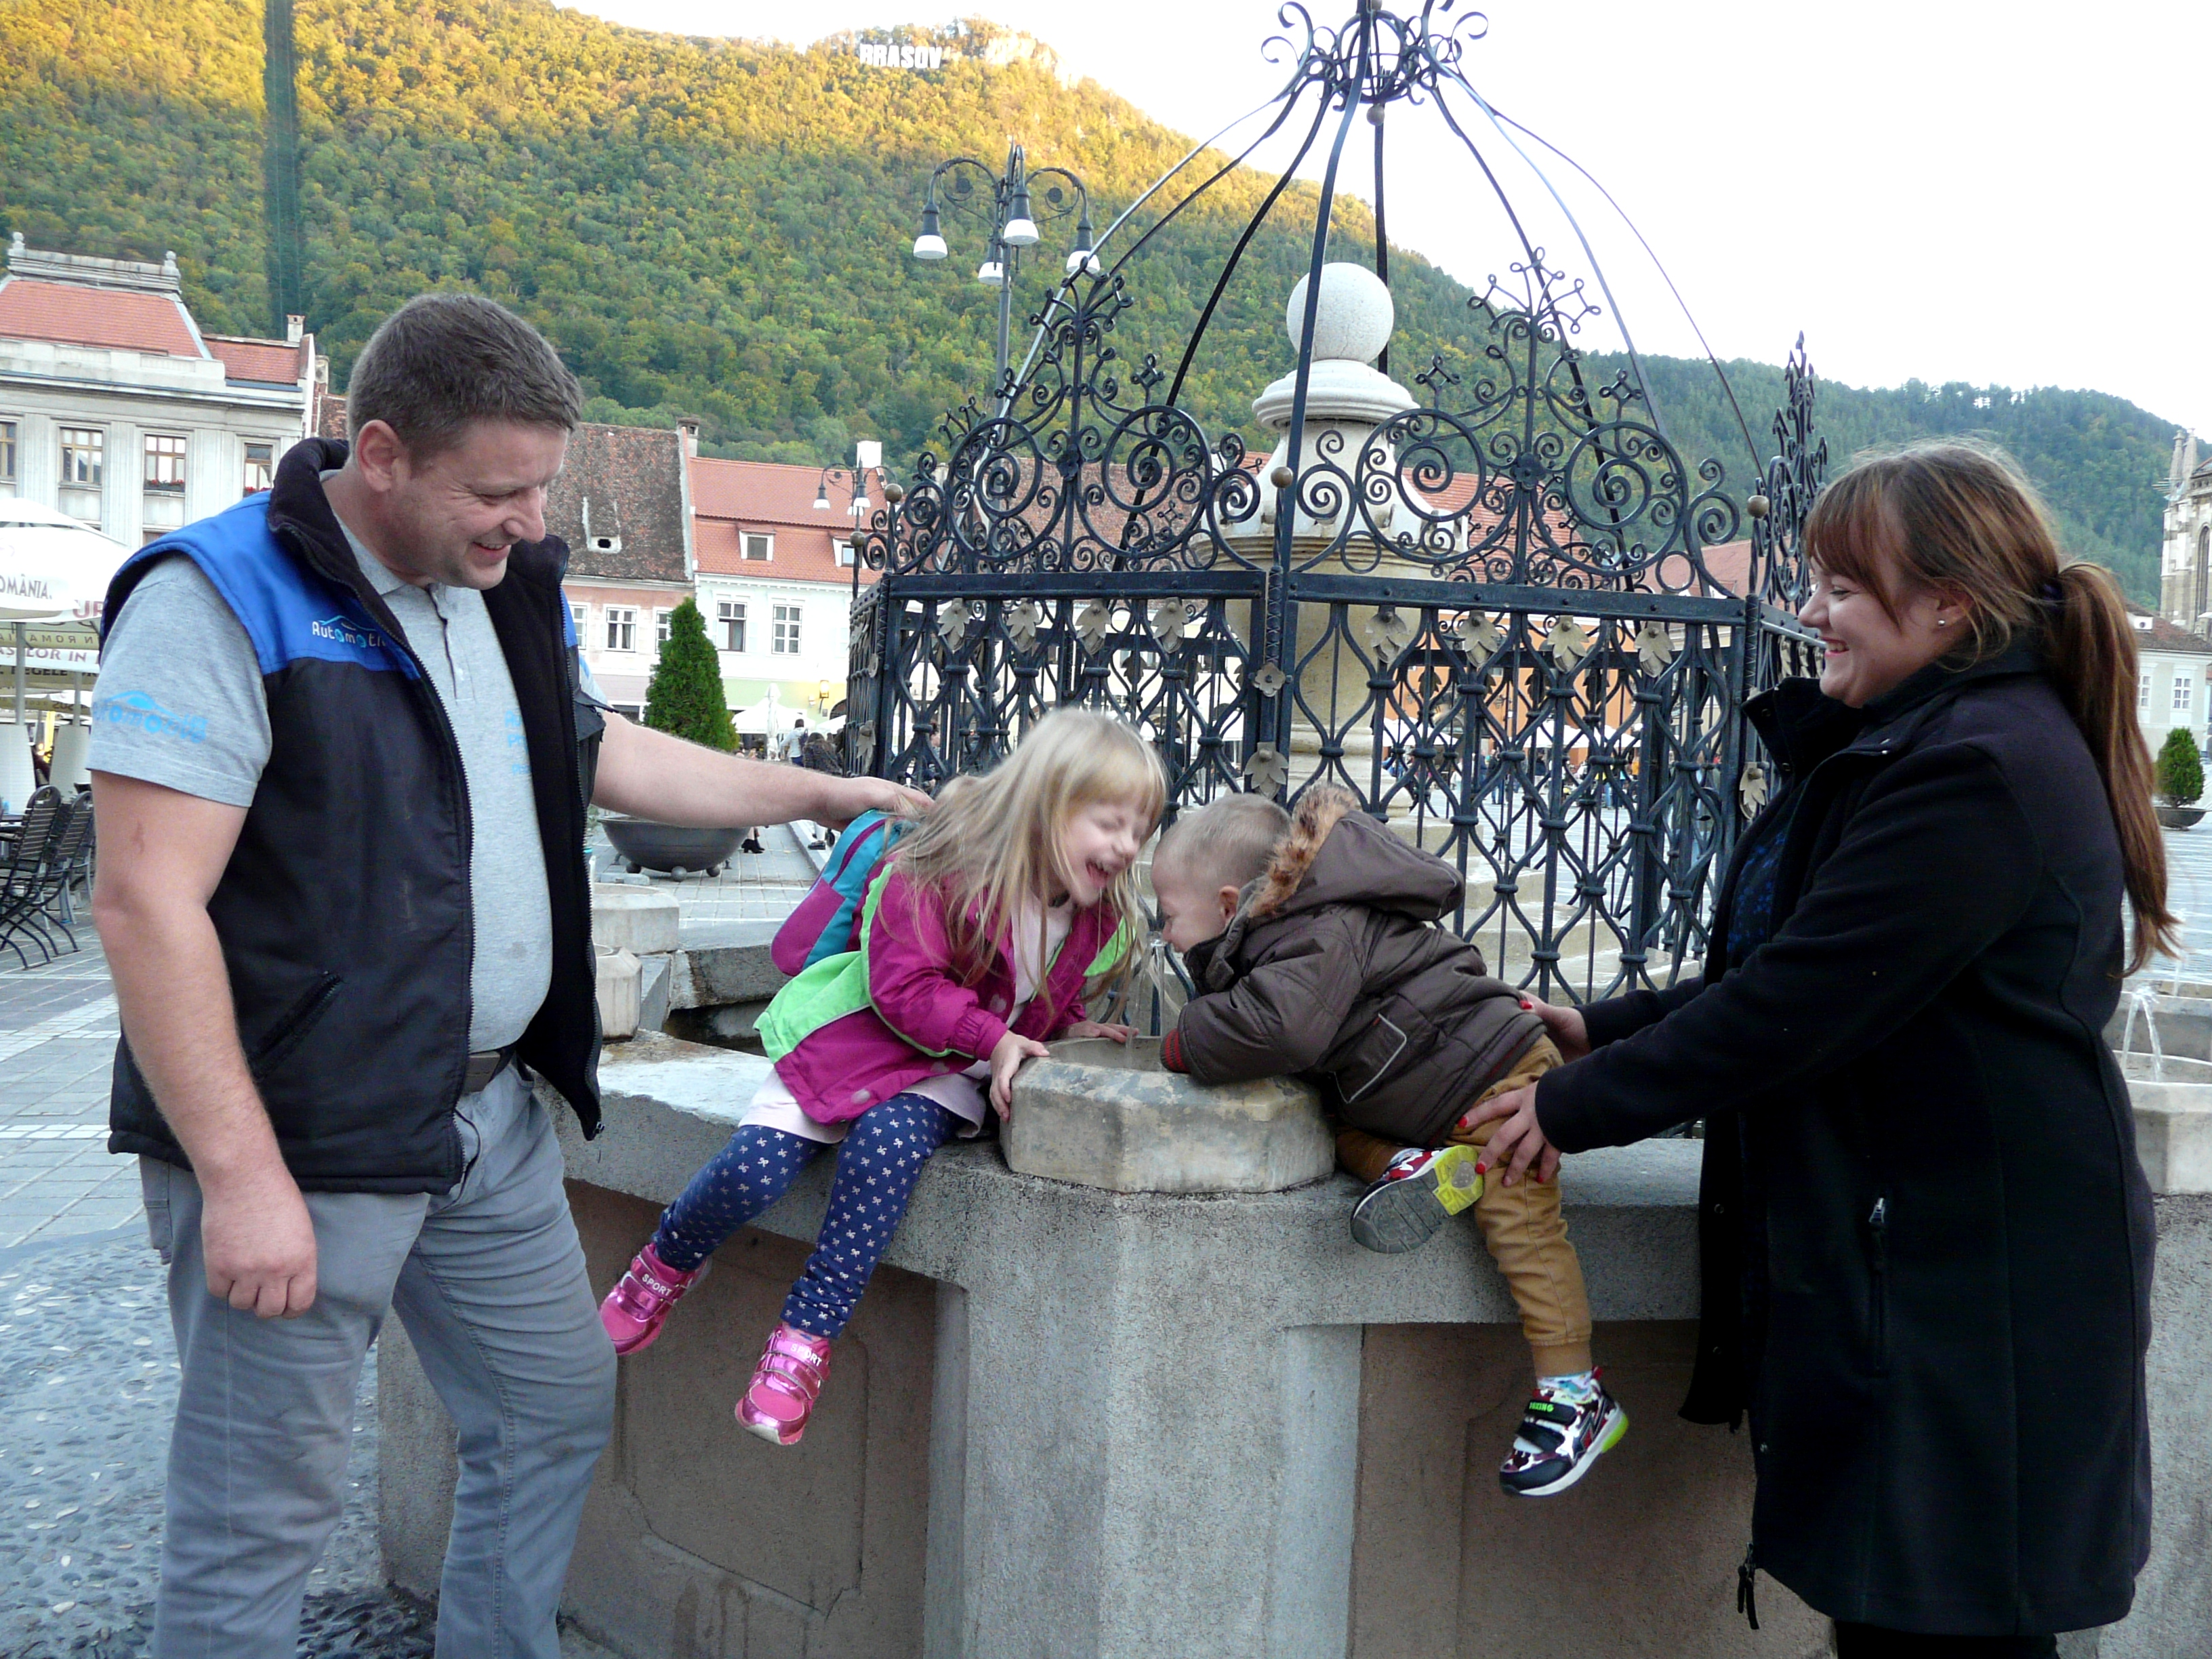 The Mesco family enjoys a fountain in the historic main square of Brasov. The South Carpathian mountains surround the town.